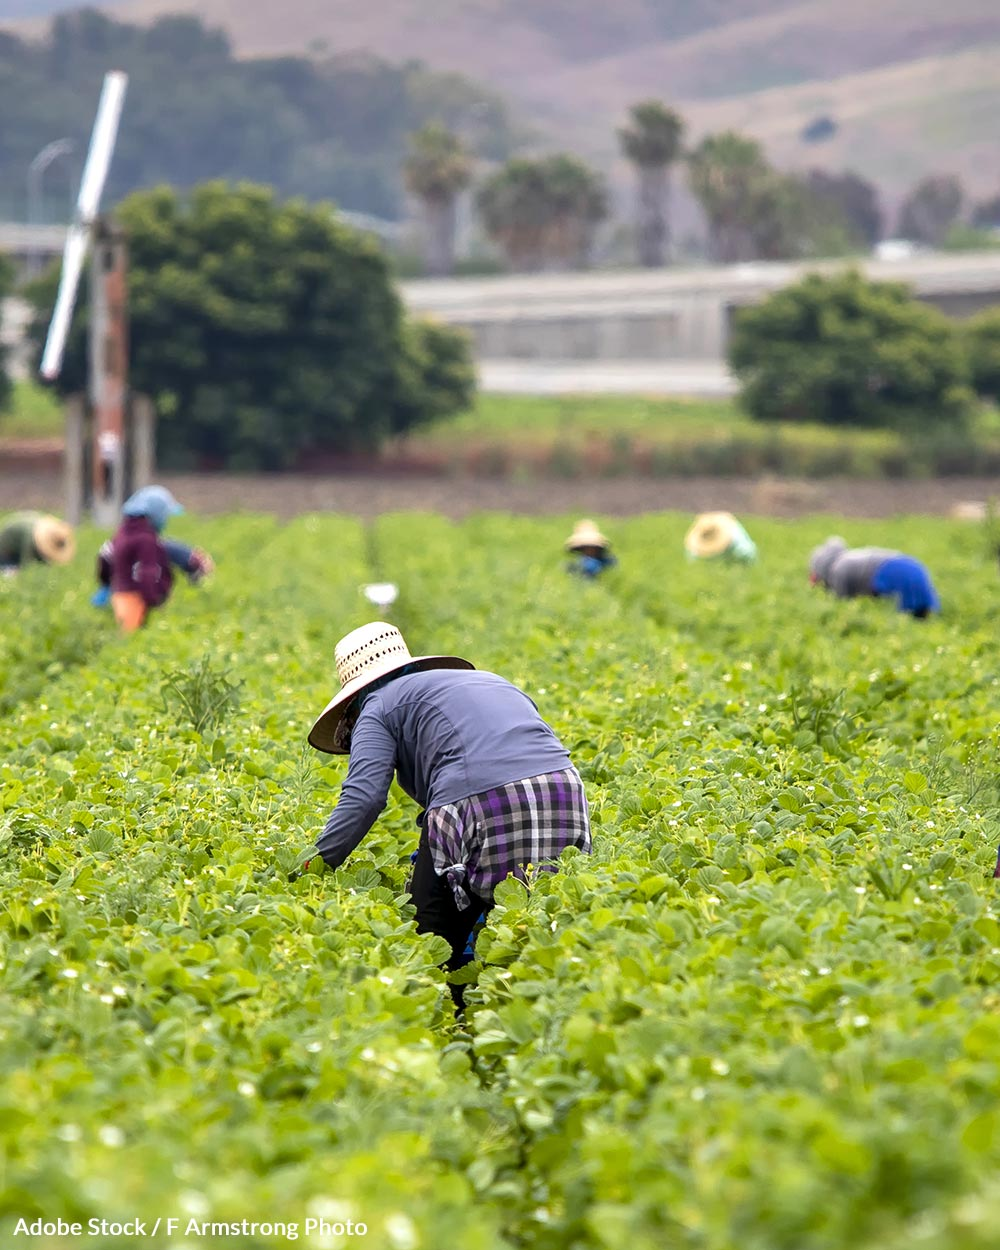 The Asunción Valdivia Heat Illness and Fatality Prevention Act would bring added protections to millions of farmworkers.